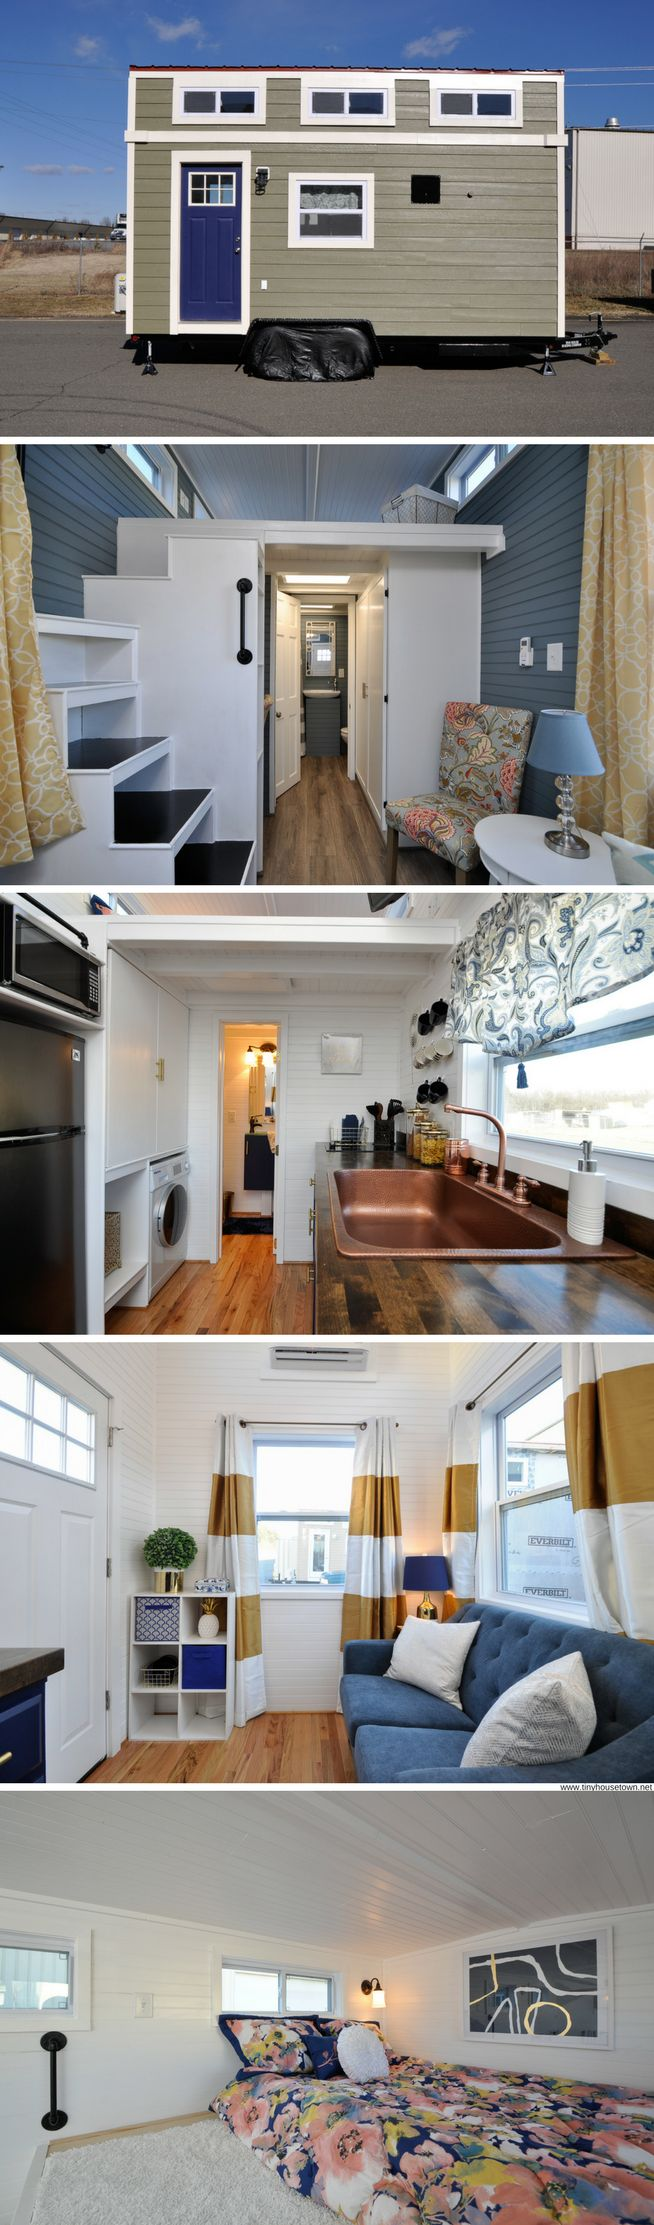 1282 best deco maison images on Pinterest | Beer, Beer caps and Corks